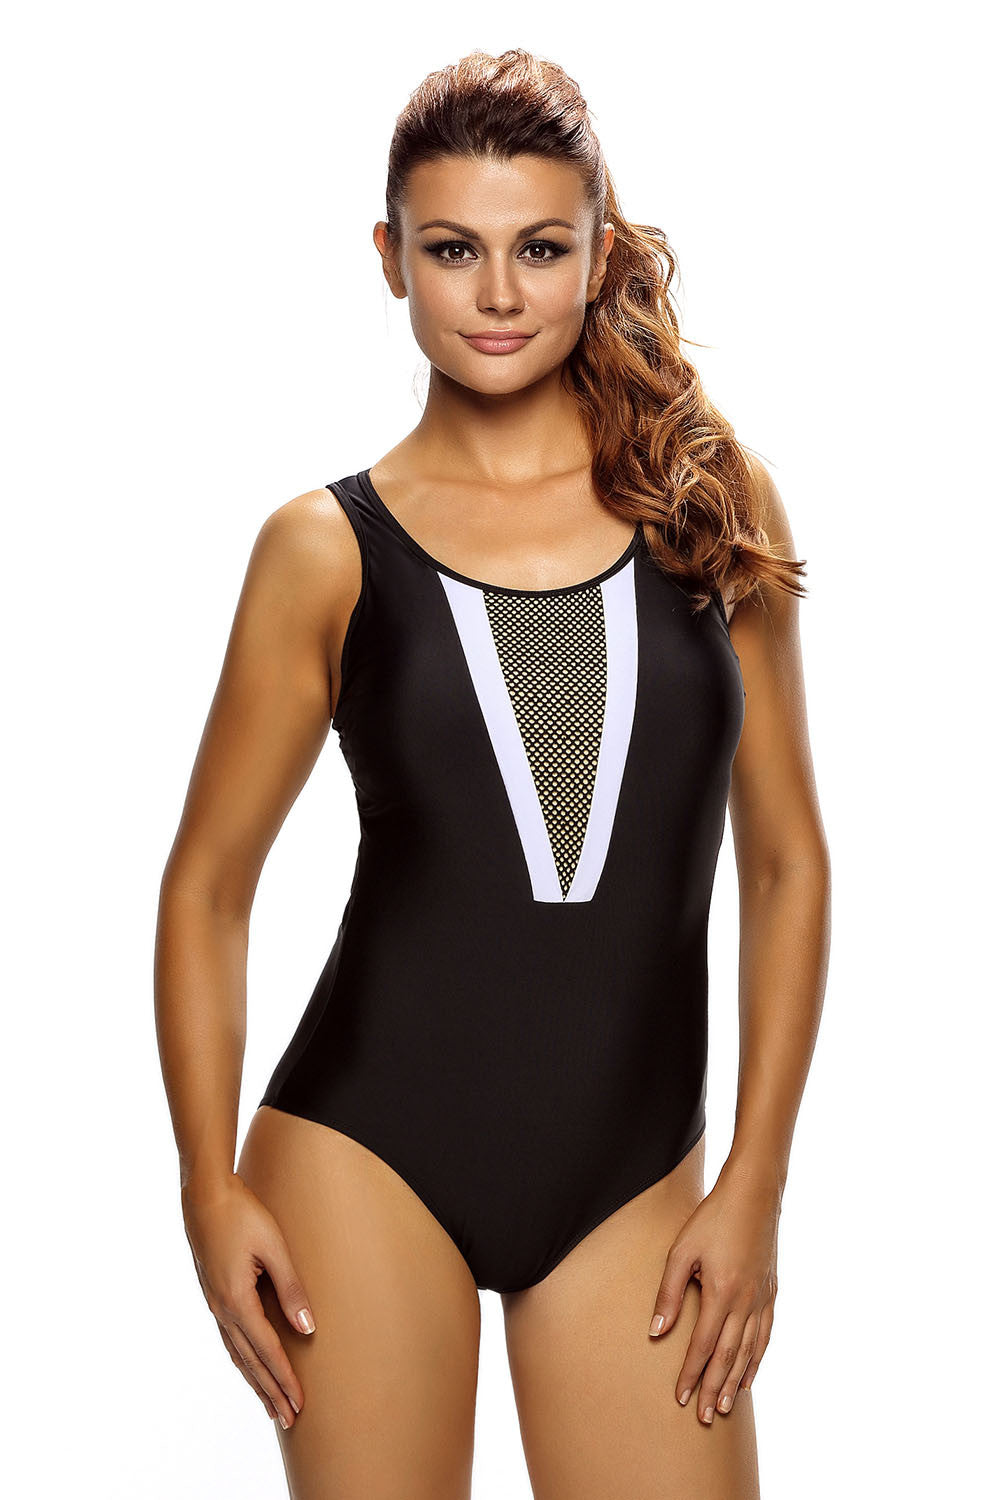 Chicloth Plunging V Mesh Splicing Accent Teddy Swimsuit - (US 4-6)S / Black Dearlover